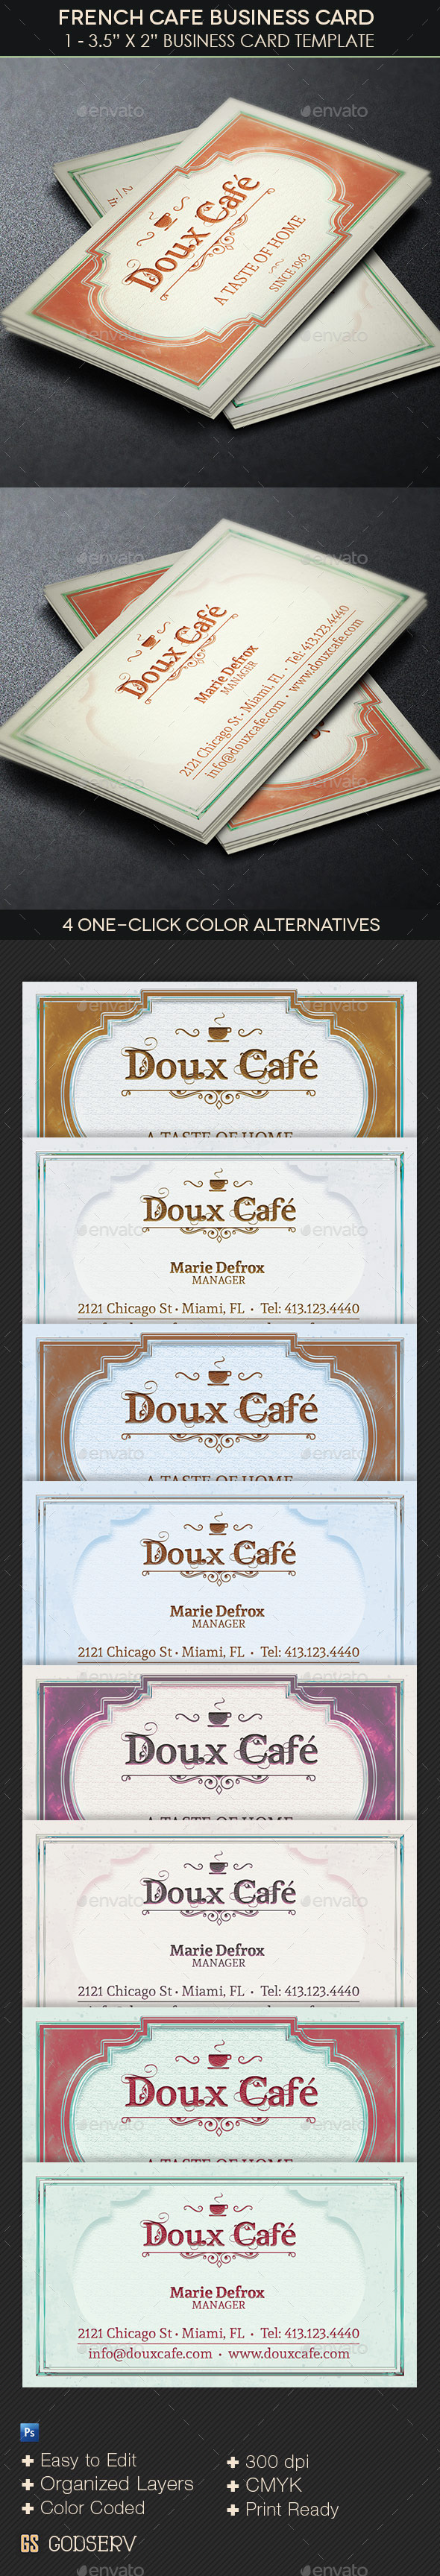 French Cafe Business Card Template   GraphicMule